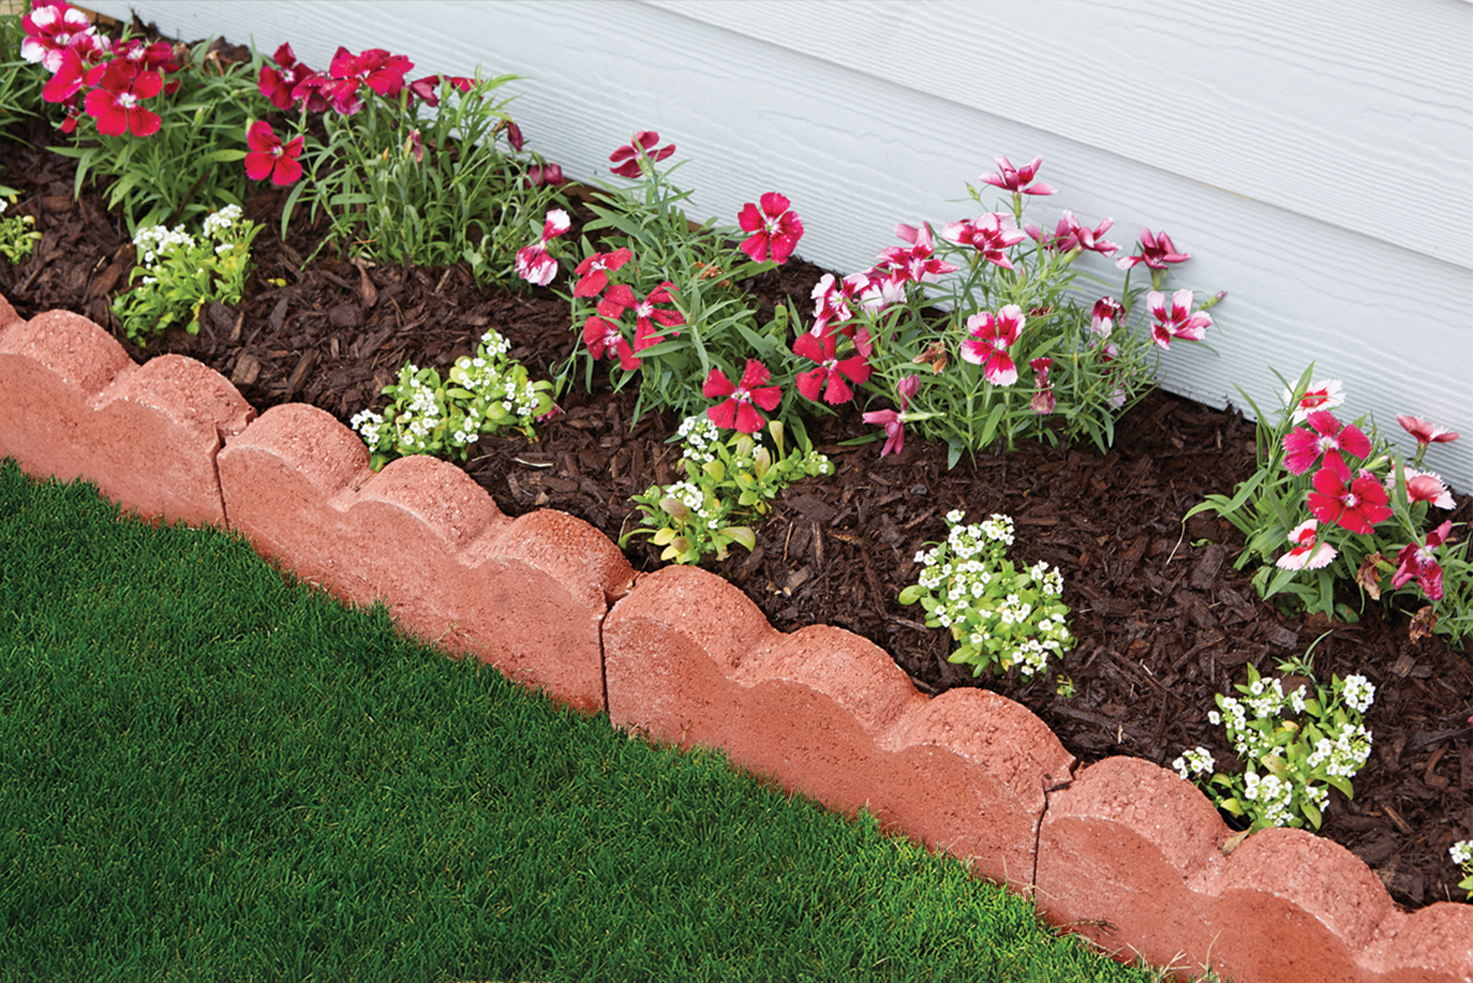 Scalloped Edging Adds A Classic Look To Any Flowerbed Or Pathway Border This 12 In Straight Version Of The Sca Garden Edging Edgers Landscape Diy Landscaping